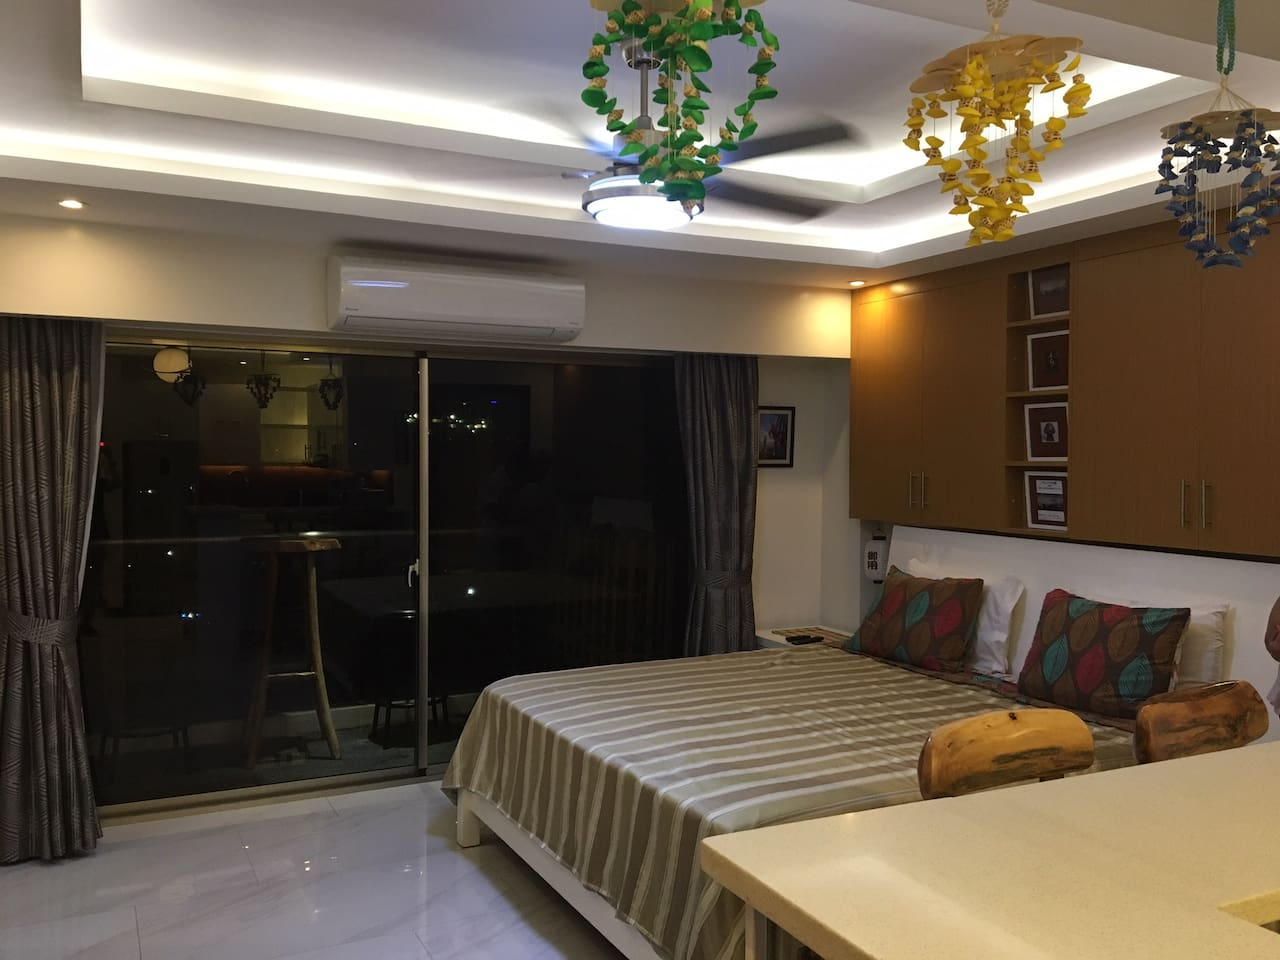 strong Air Conditioner, recessed lighting and private balcony